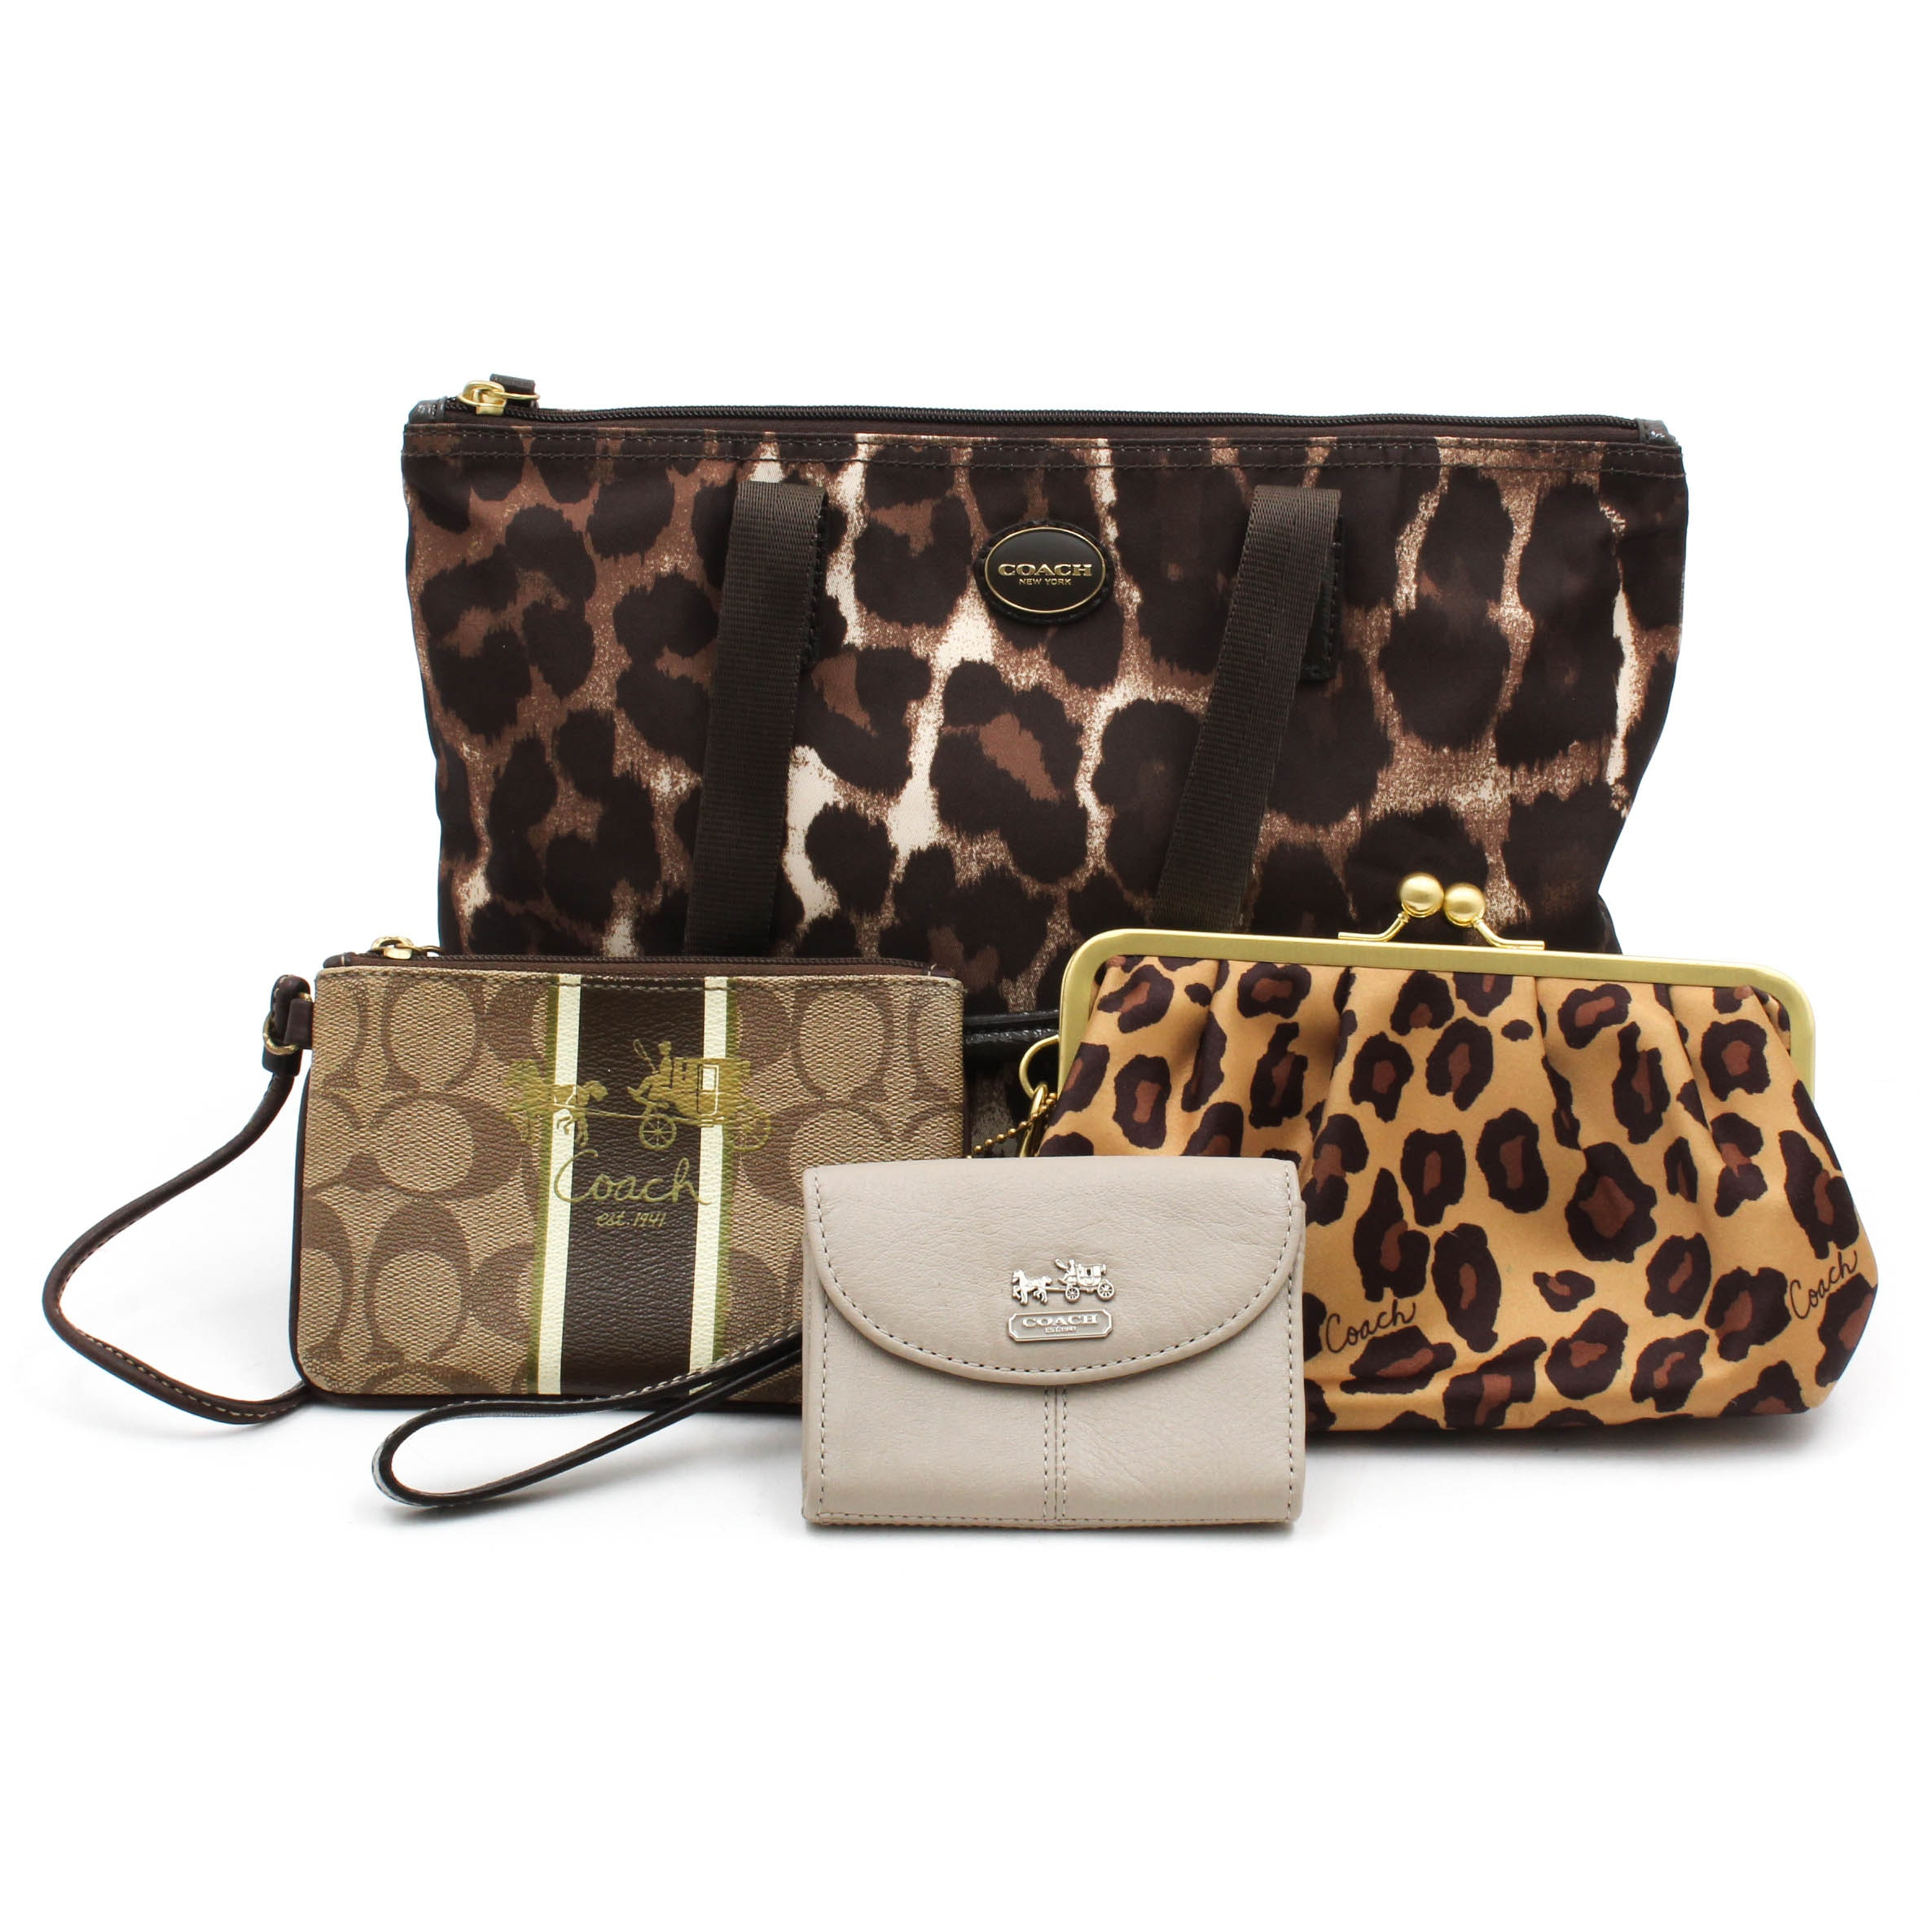 Coach #F77442 Tote, Wristlets and Wallet